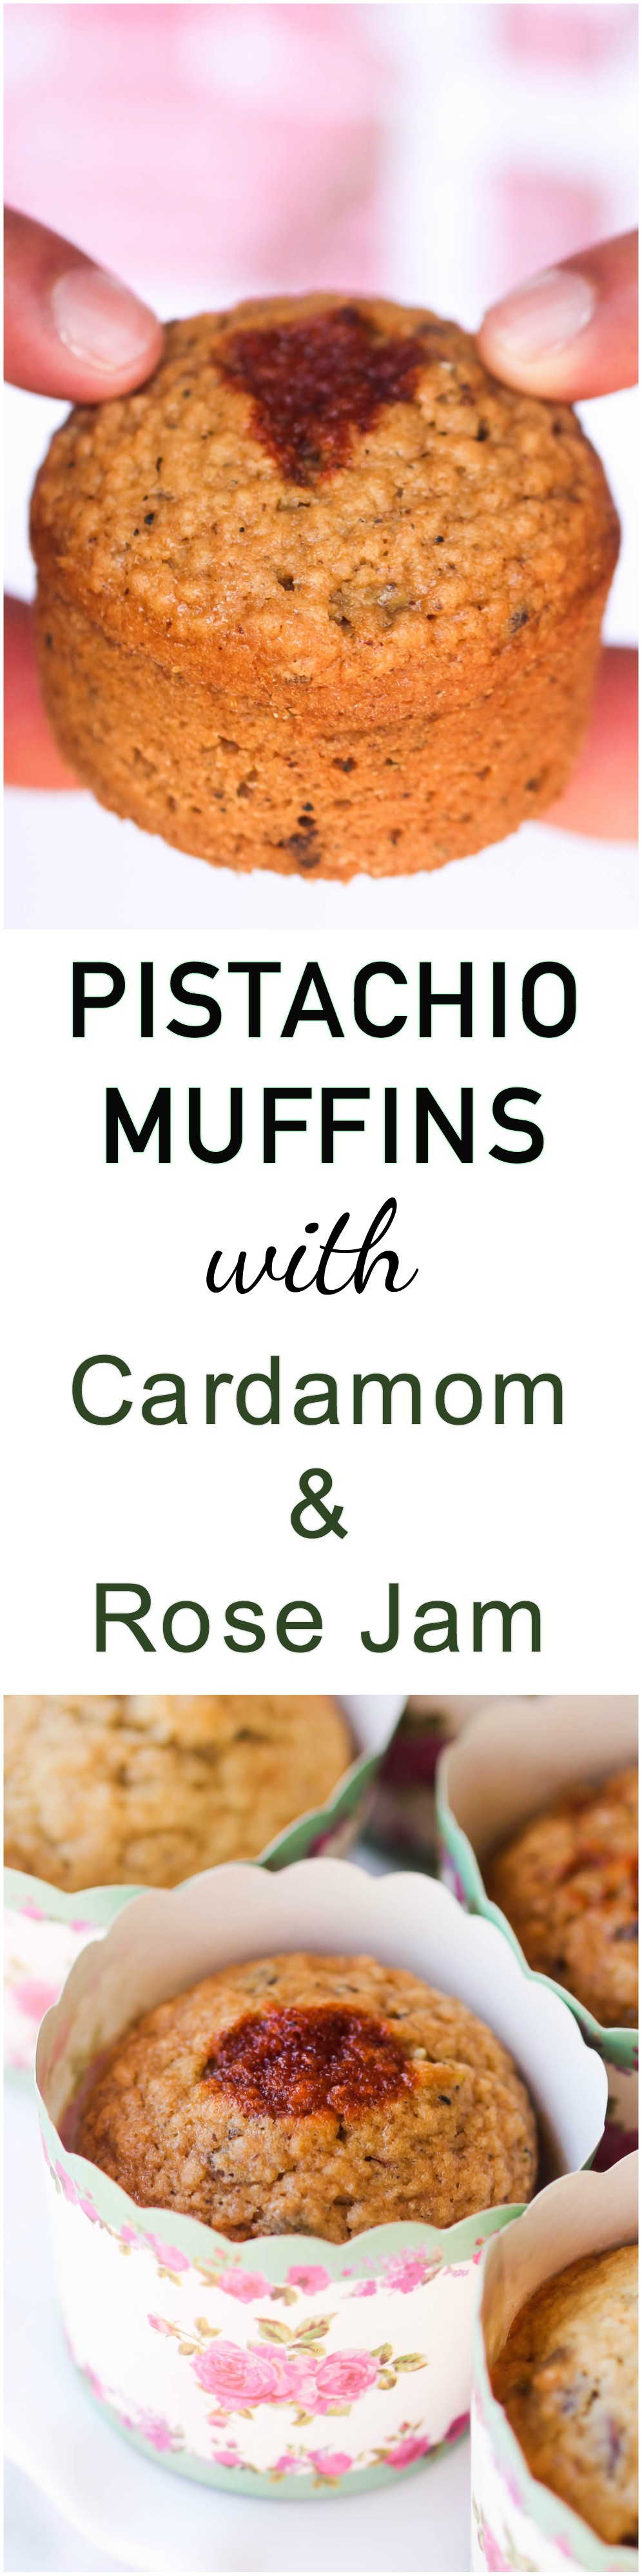 Pistachio Muffins with Cardamom and Rose Jam are perfect for grab n' go breakfast or afternoon snack with your tea or coffee.